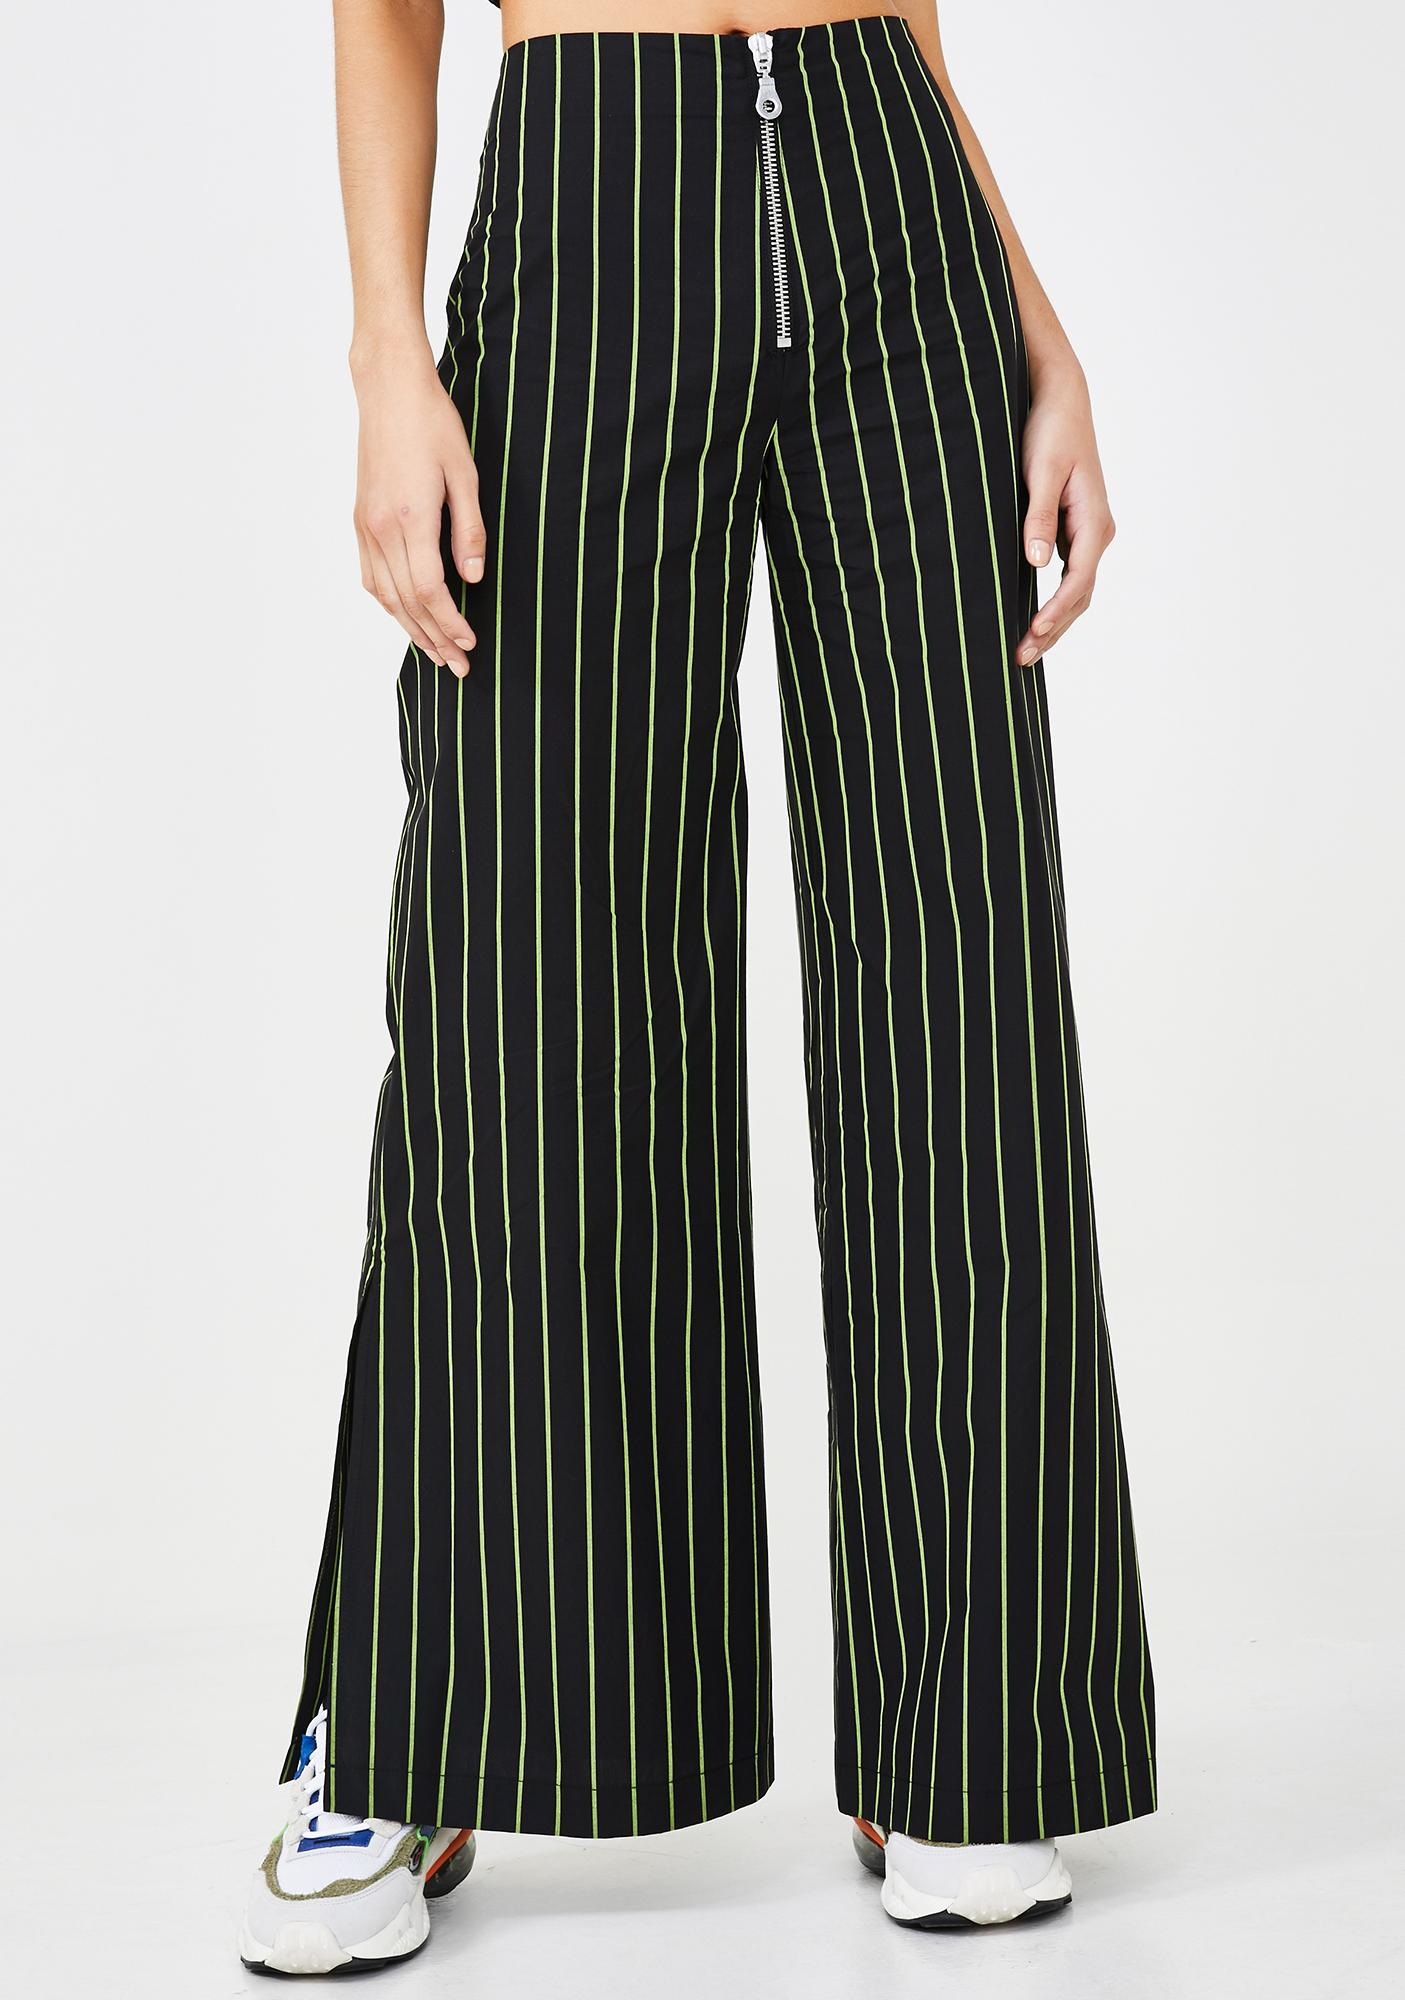 The Ragged Priest Cyber Pinstripe Pants